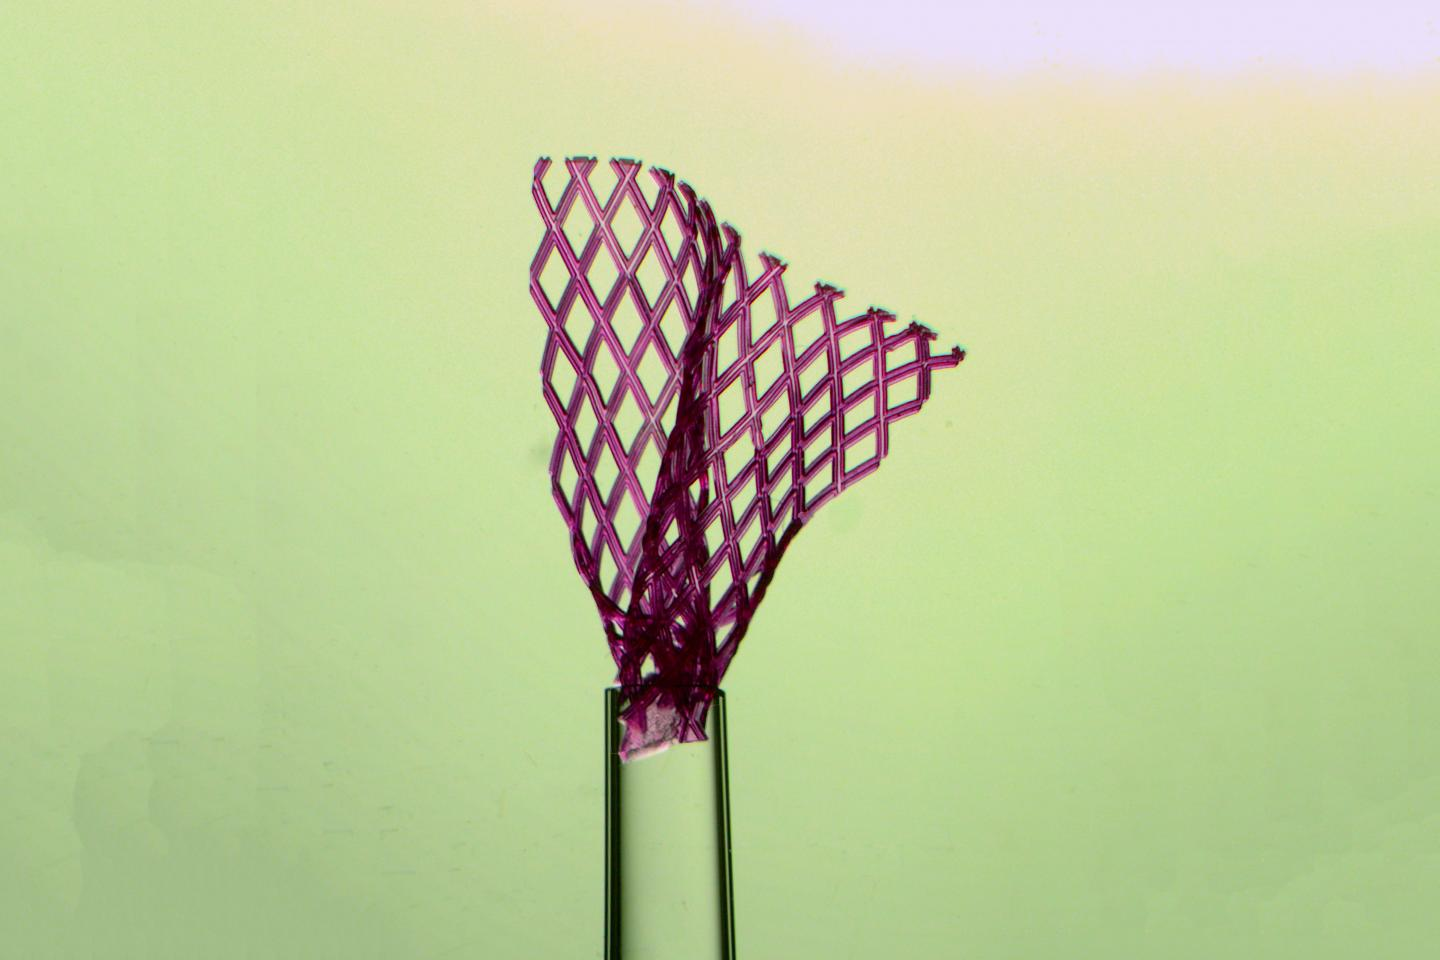 The flexible tissue scaffold, shown here emerging from a glass pipette with a tip one millimetre wide, unfolds itself after injection into the body. This could enable surgeons to use minimally invasive techniques, which reduce recovery time, scarring and other negative effects. Credit: Miles Montgomery and Rick Lu